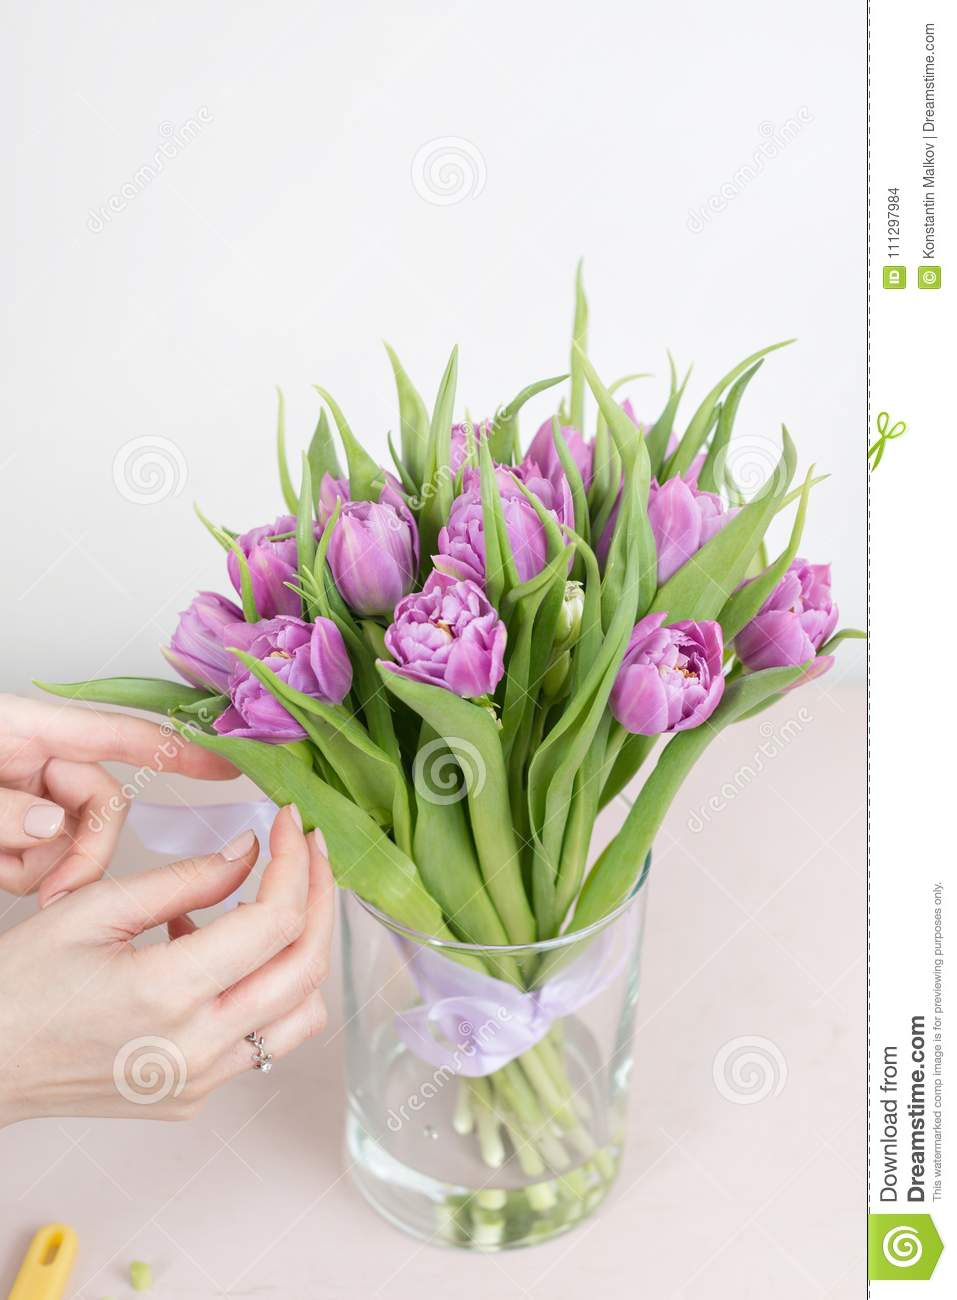 Caring for a bouquet of flowers step by step cut the stems and put download caring for a bouquet of flowers step by step cut the stems and izmirmasajfo